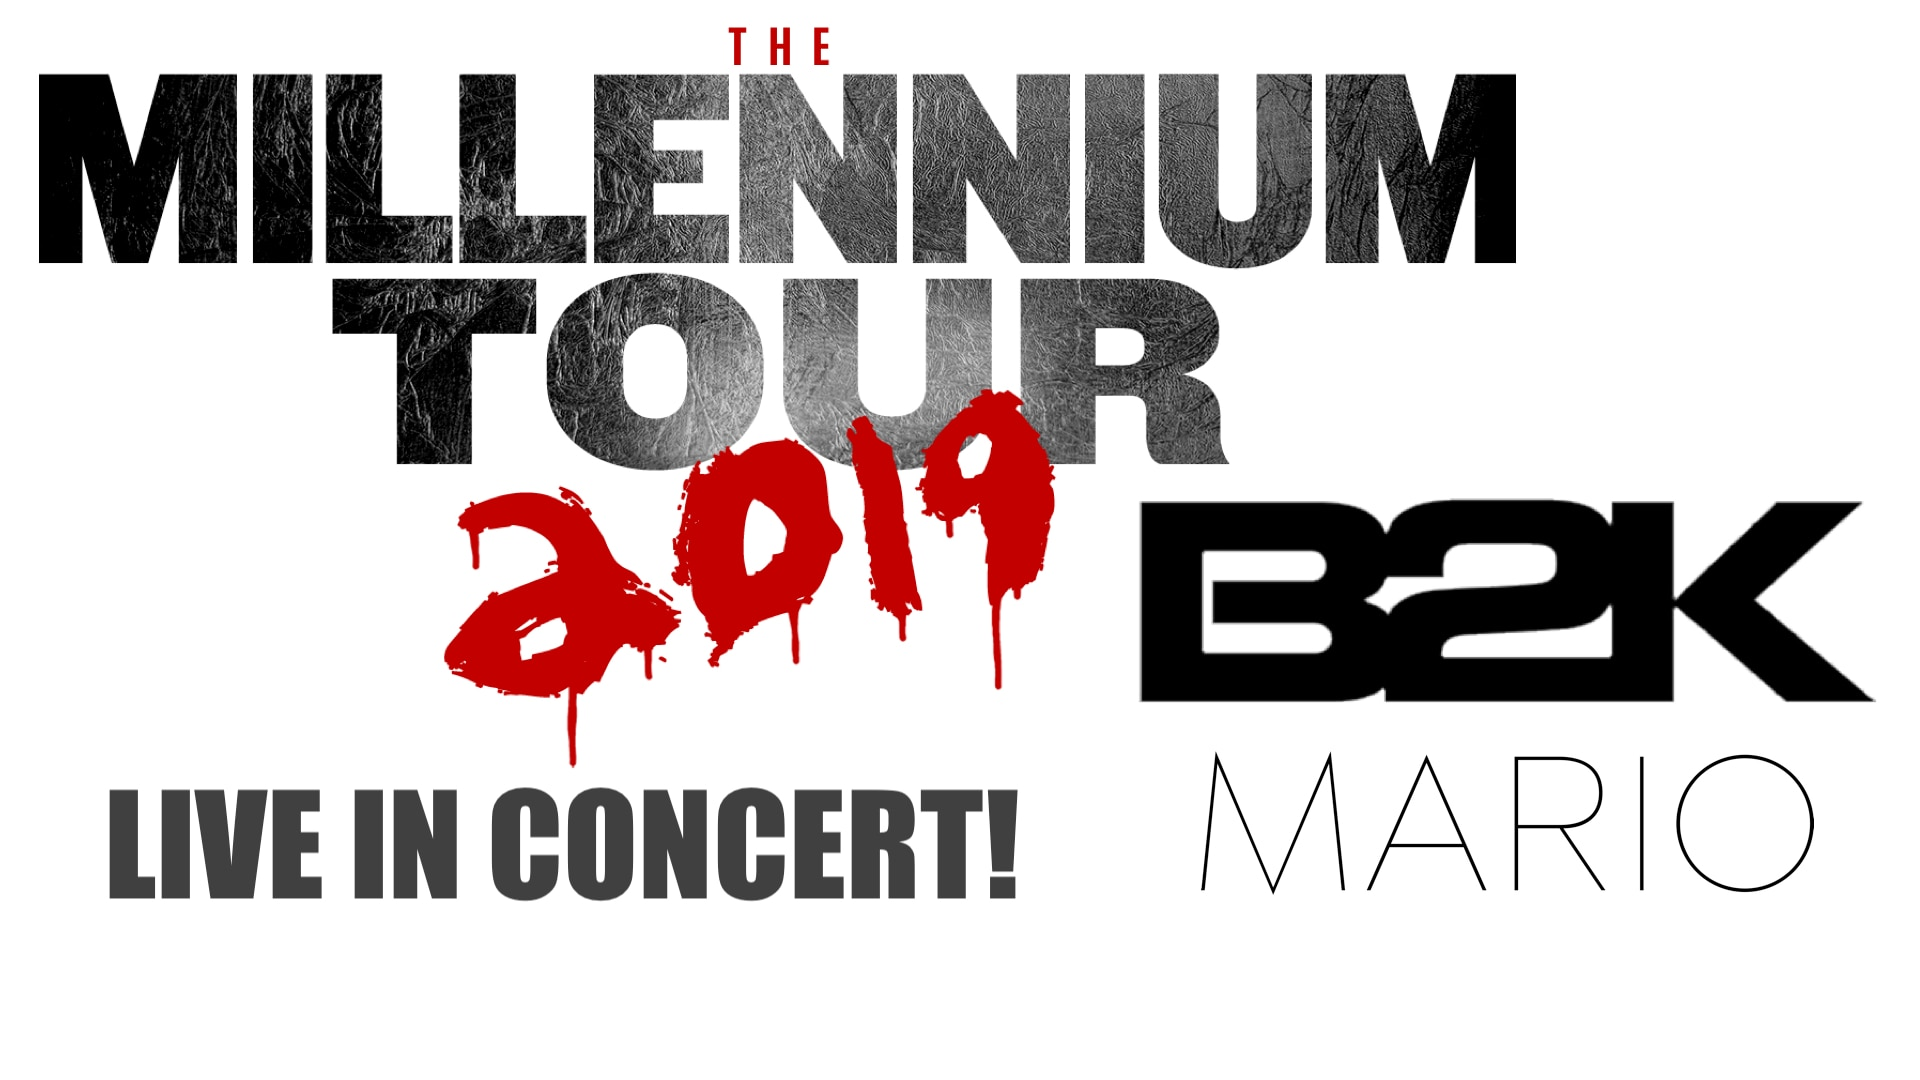 The Millennium Tour: B2K, Mario, Pretty Ricky, Lloyd, Chingy, and the Ying Yang Twins